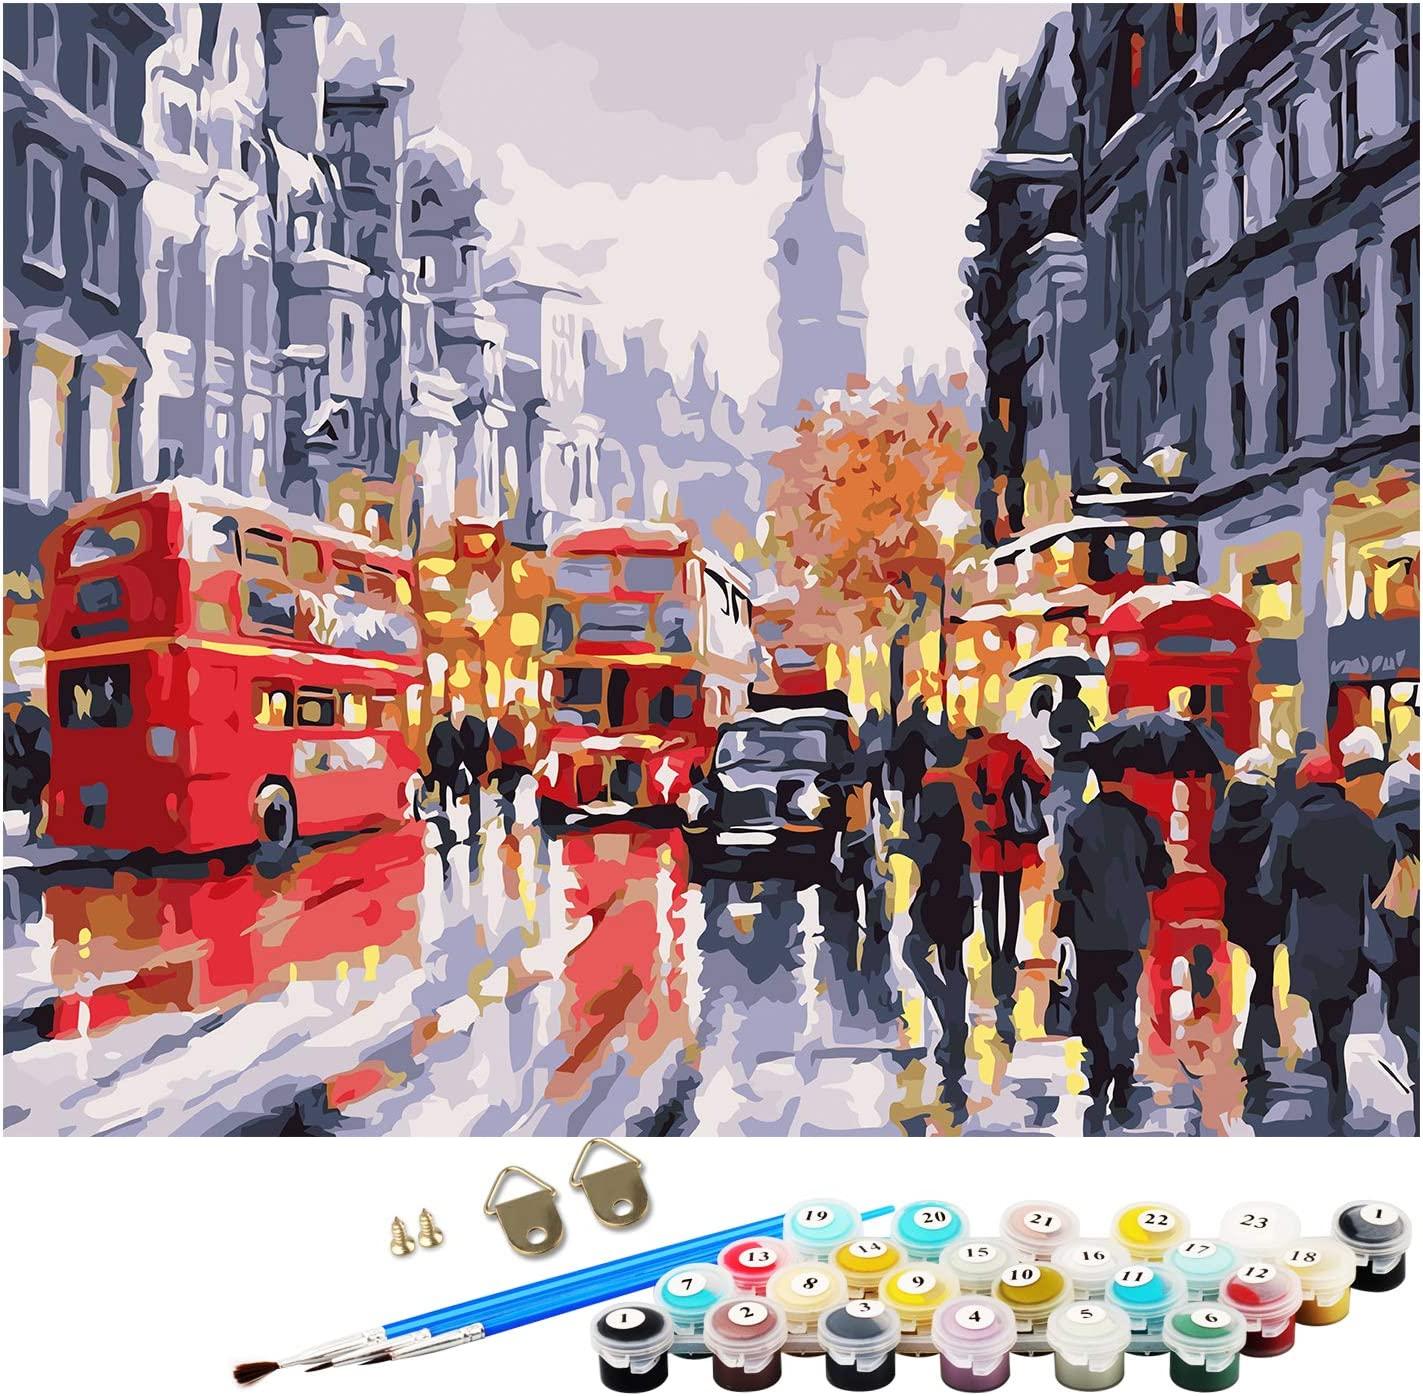 TENOL DIY Oil Paint by Numbers Kit WAS £12.99 NOW £6.49 w/code A7JKW98F @ Amazon